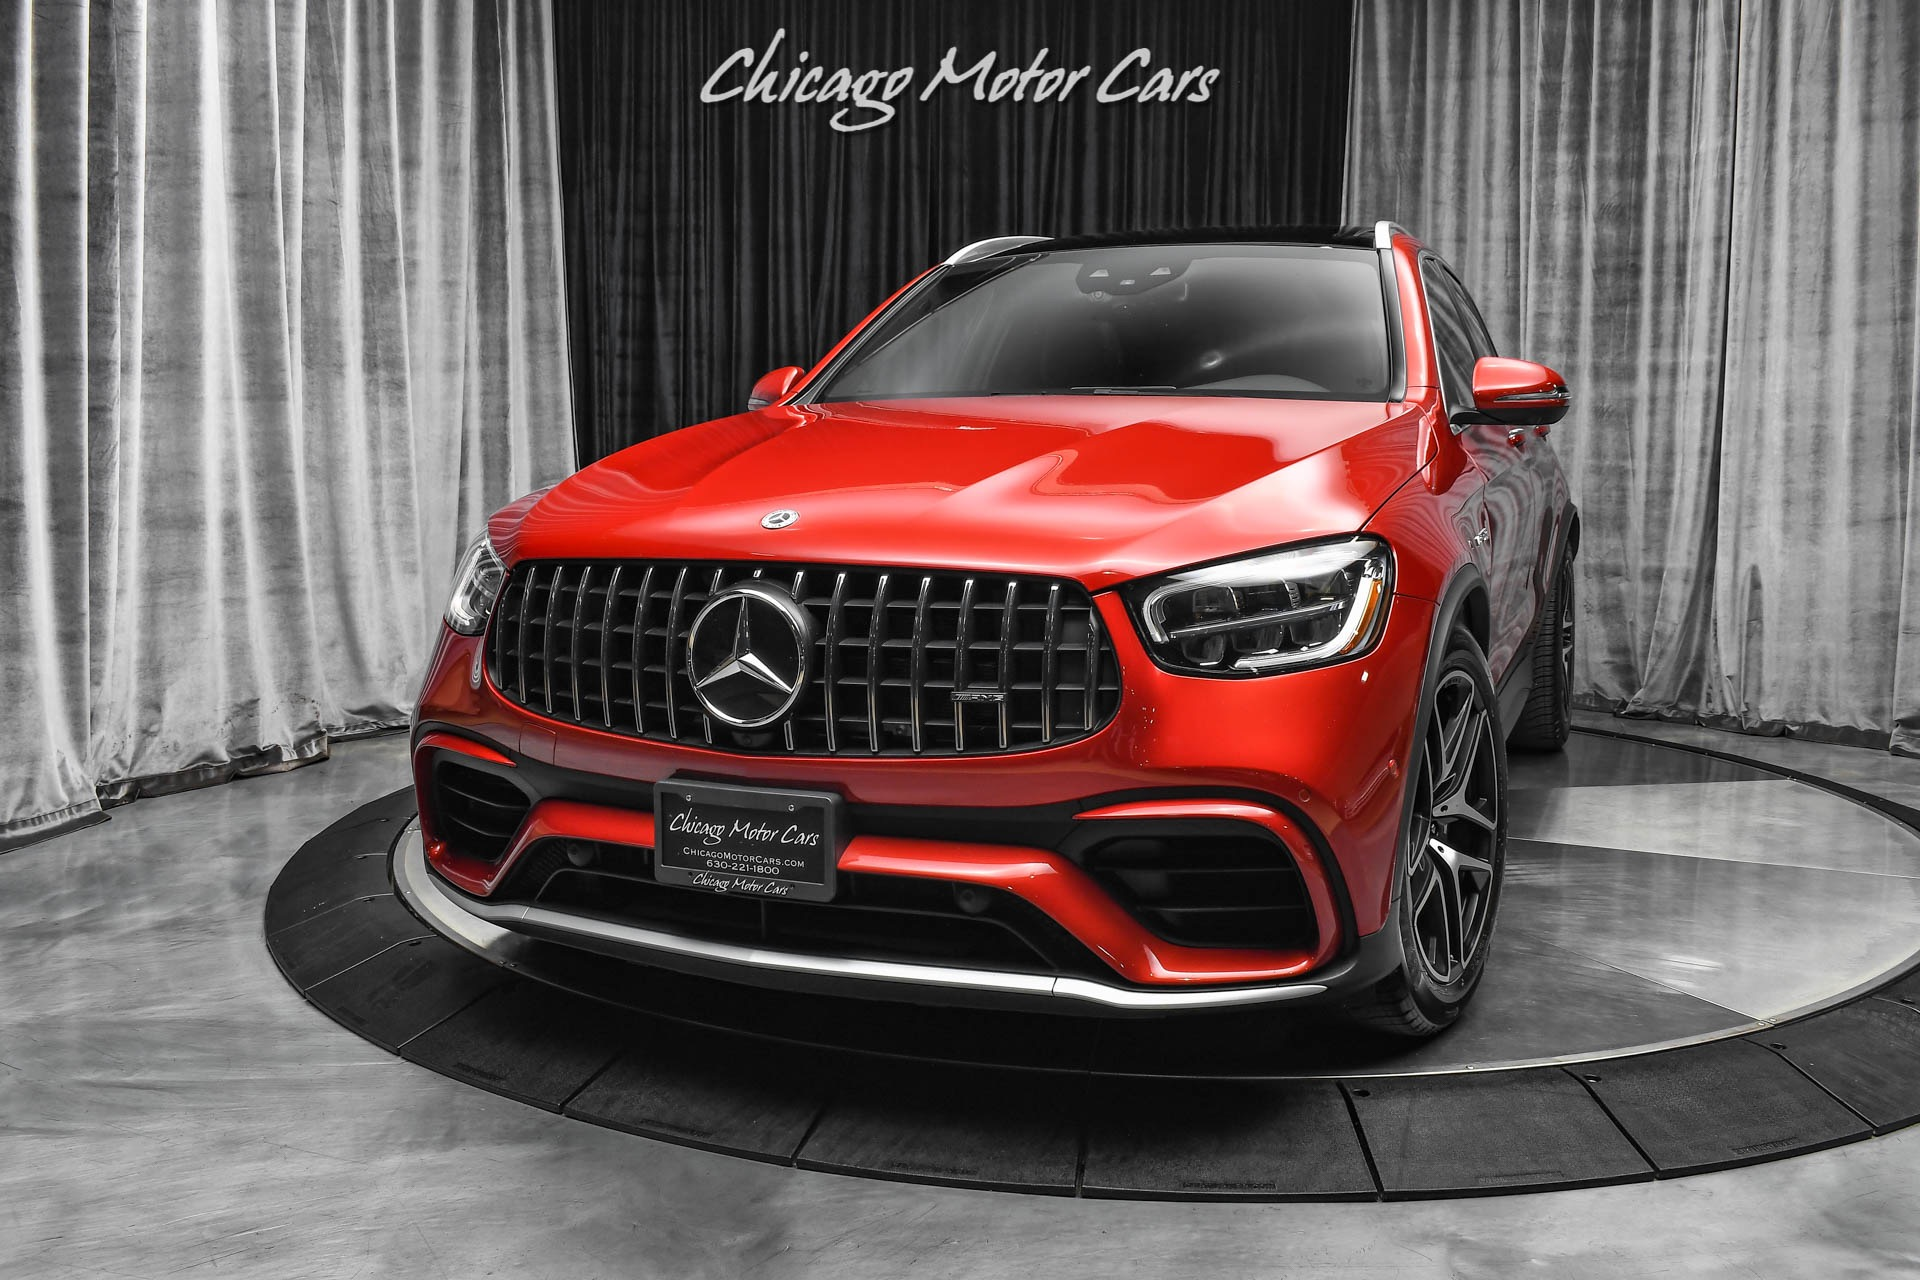 Used-2020-Mercedes-Benz-GLC63-63-AMG-4-Matic-SUV-PANORAMIC-ROOF-PARKING-ASSISTANCE-PKG-CARDINAL-RED